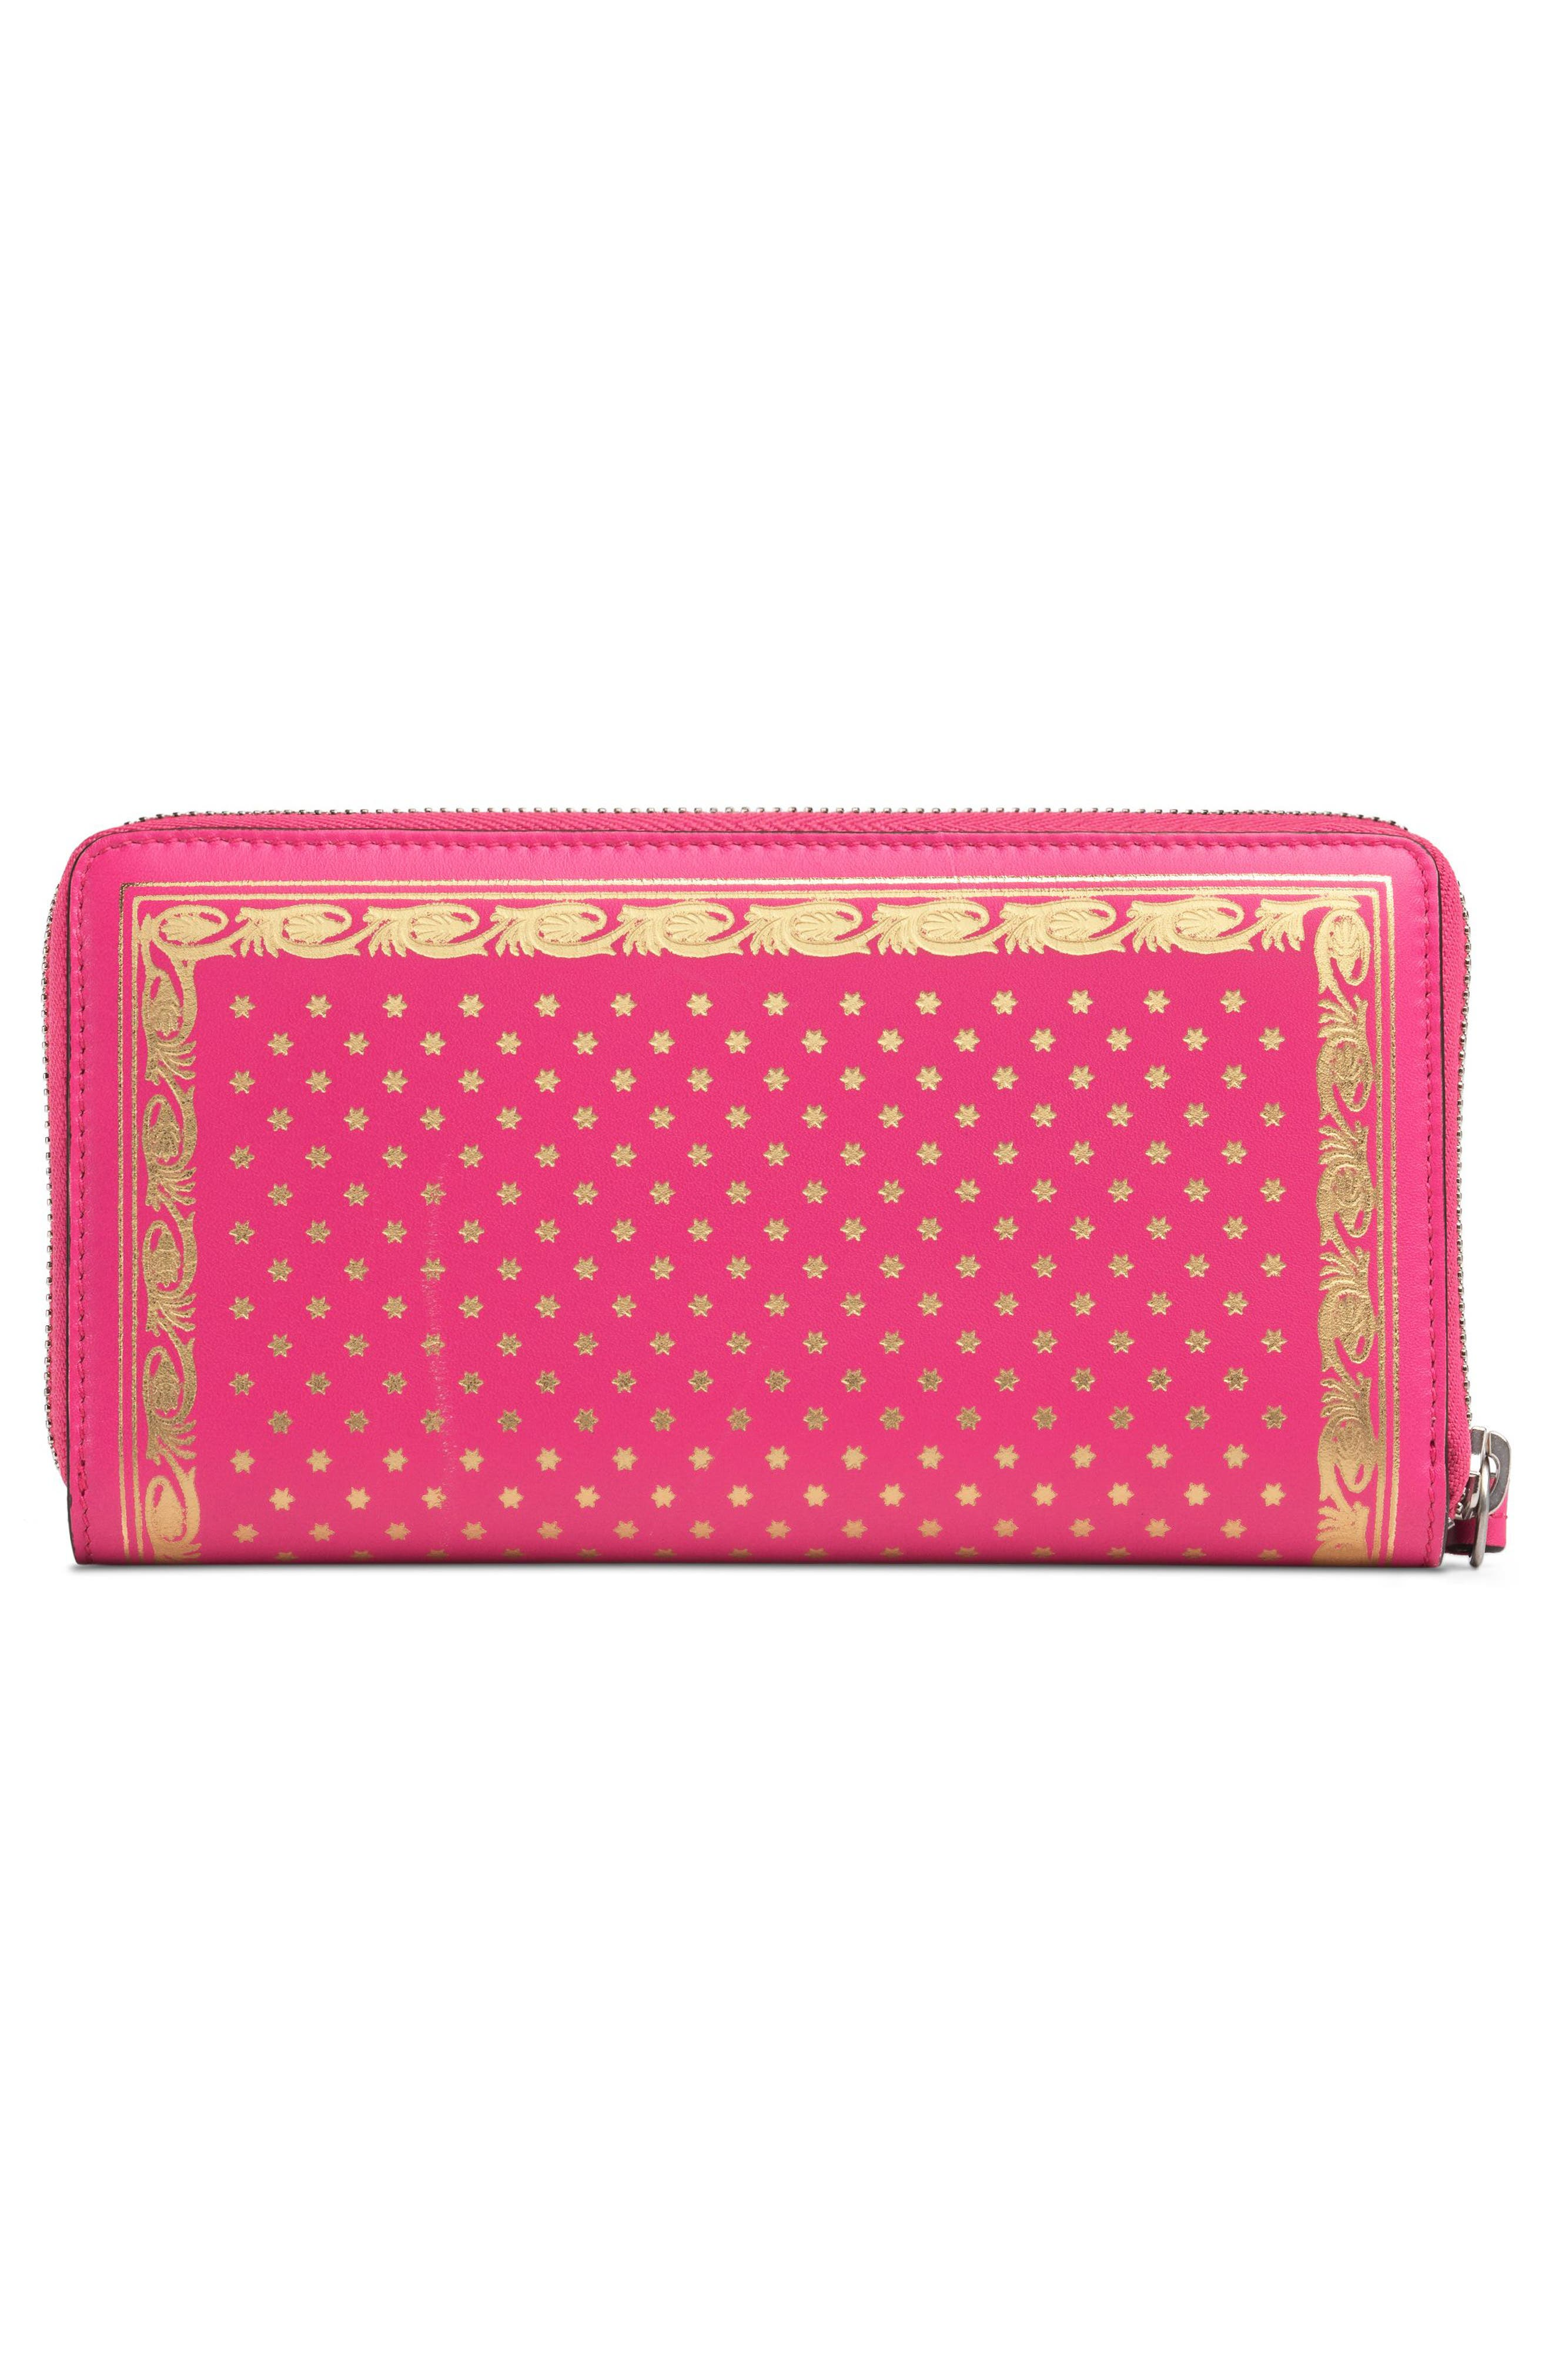 Guccy Moon & Stars Leather Zip Around Wallet,                             Alternate thumbnail 3, color,                             BRIGHT FUCSIA ORO